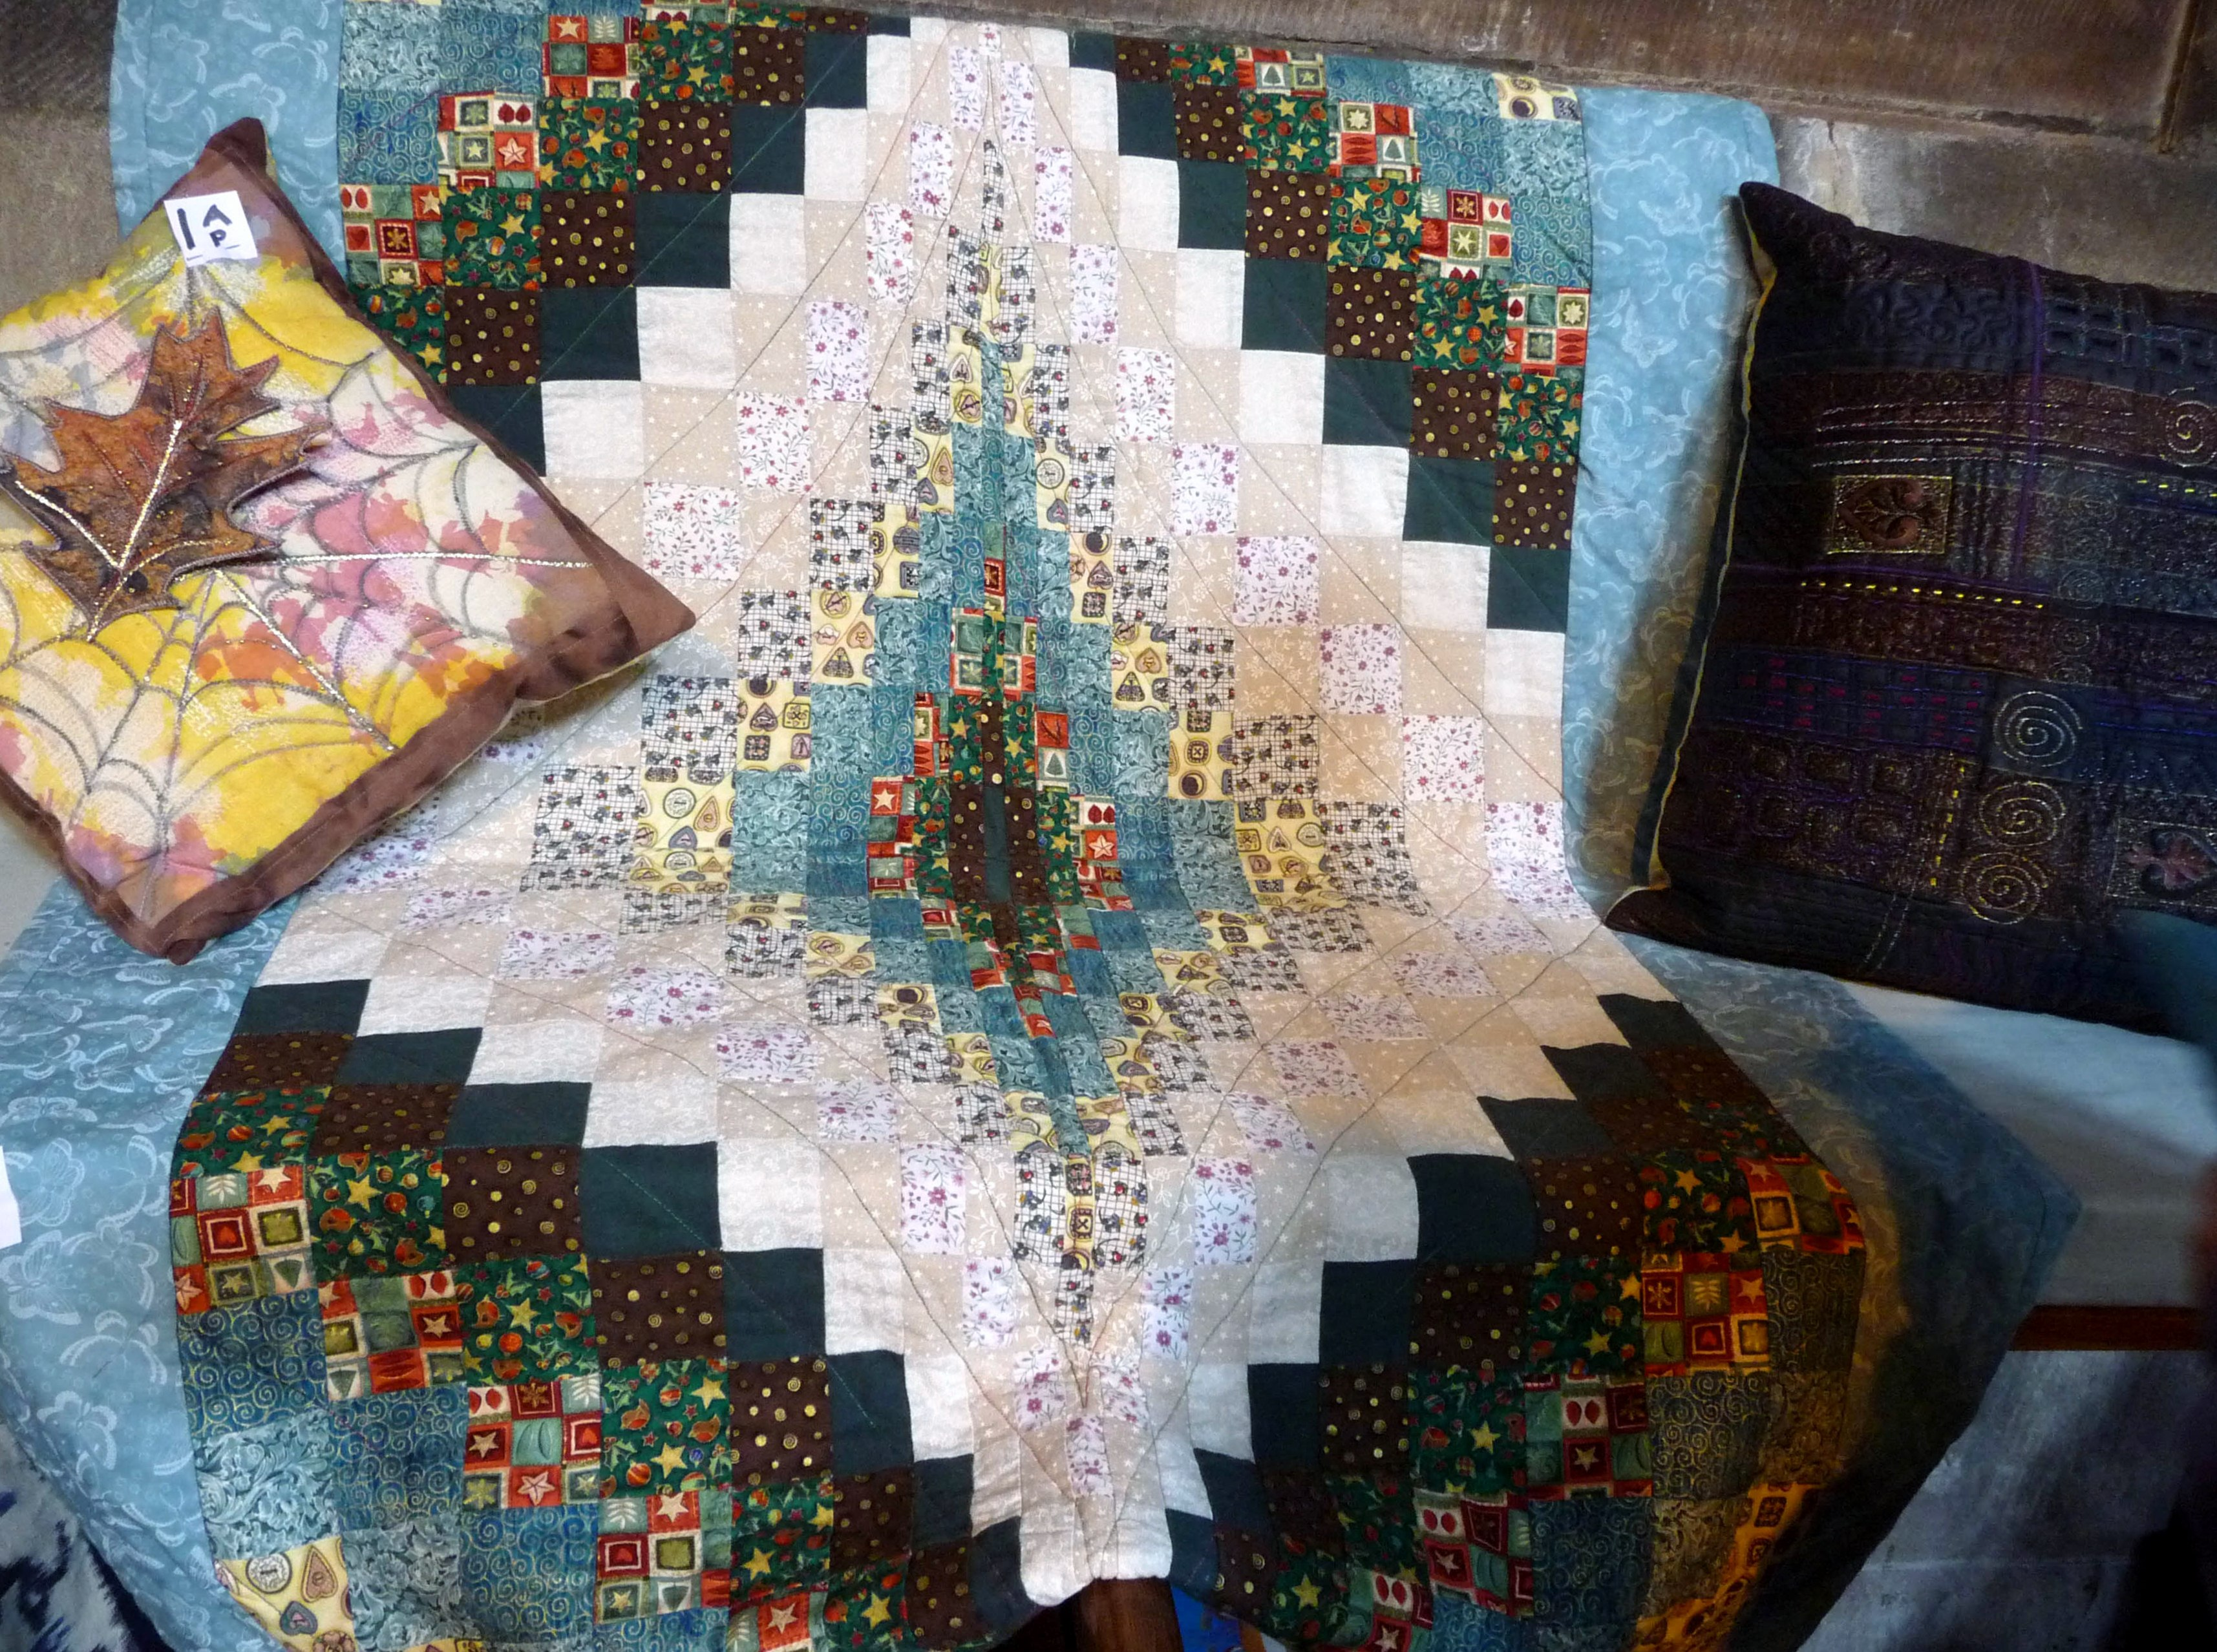 Quilt made by Cherill Ambrose, Stitchin' Sisters Group